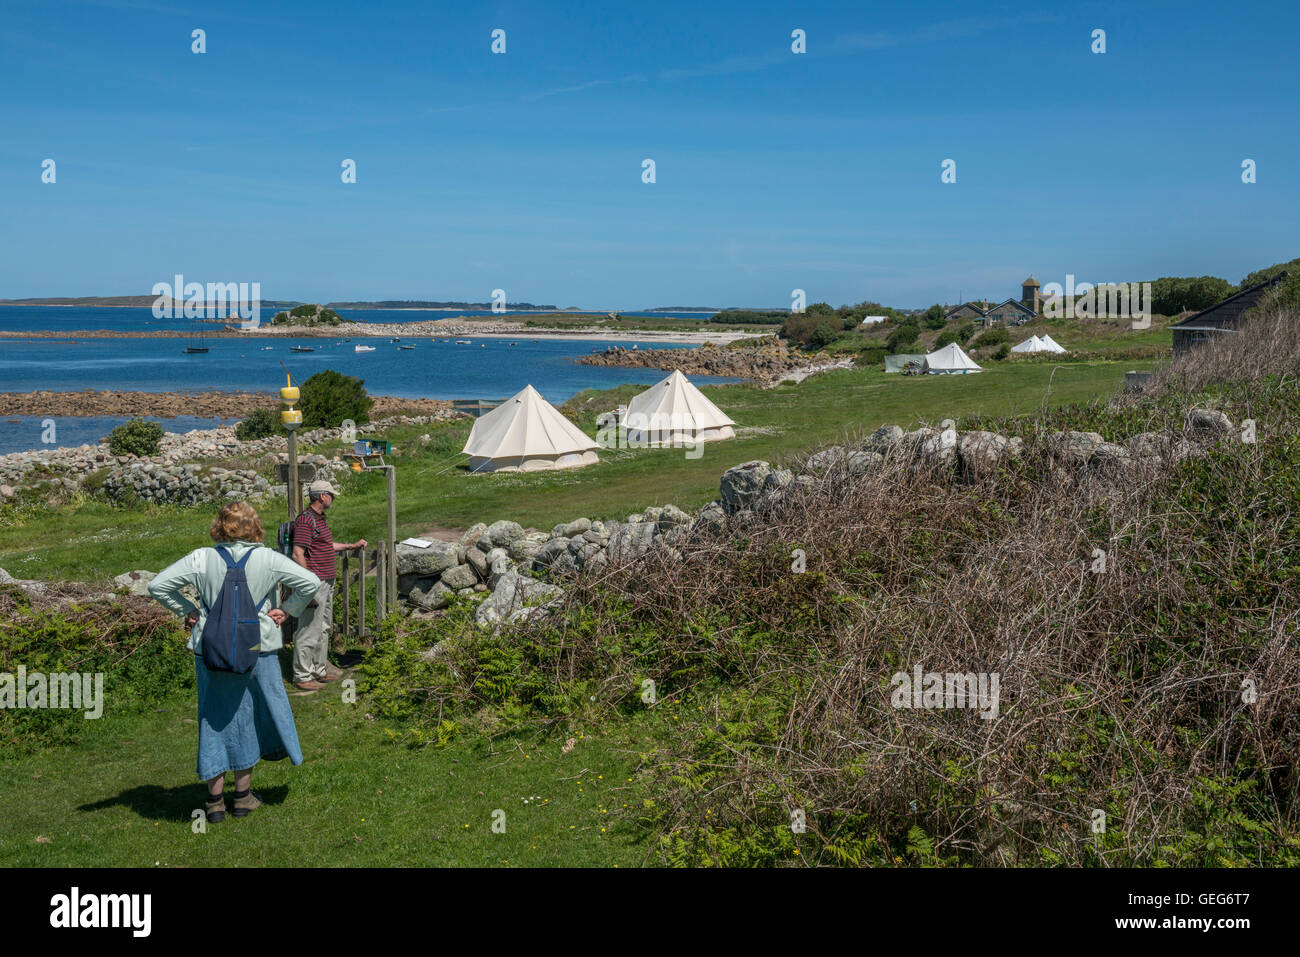 Troytown farm campsite. St Agnes. Isles of Scilly. Cornwall. England. UK - Stock Image